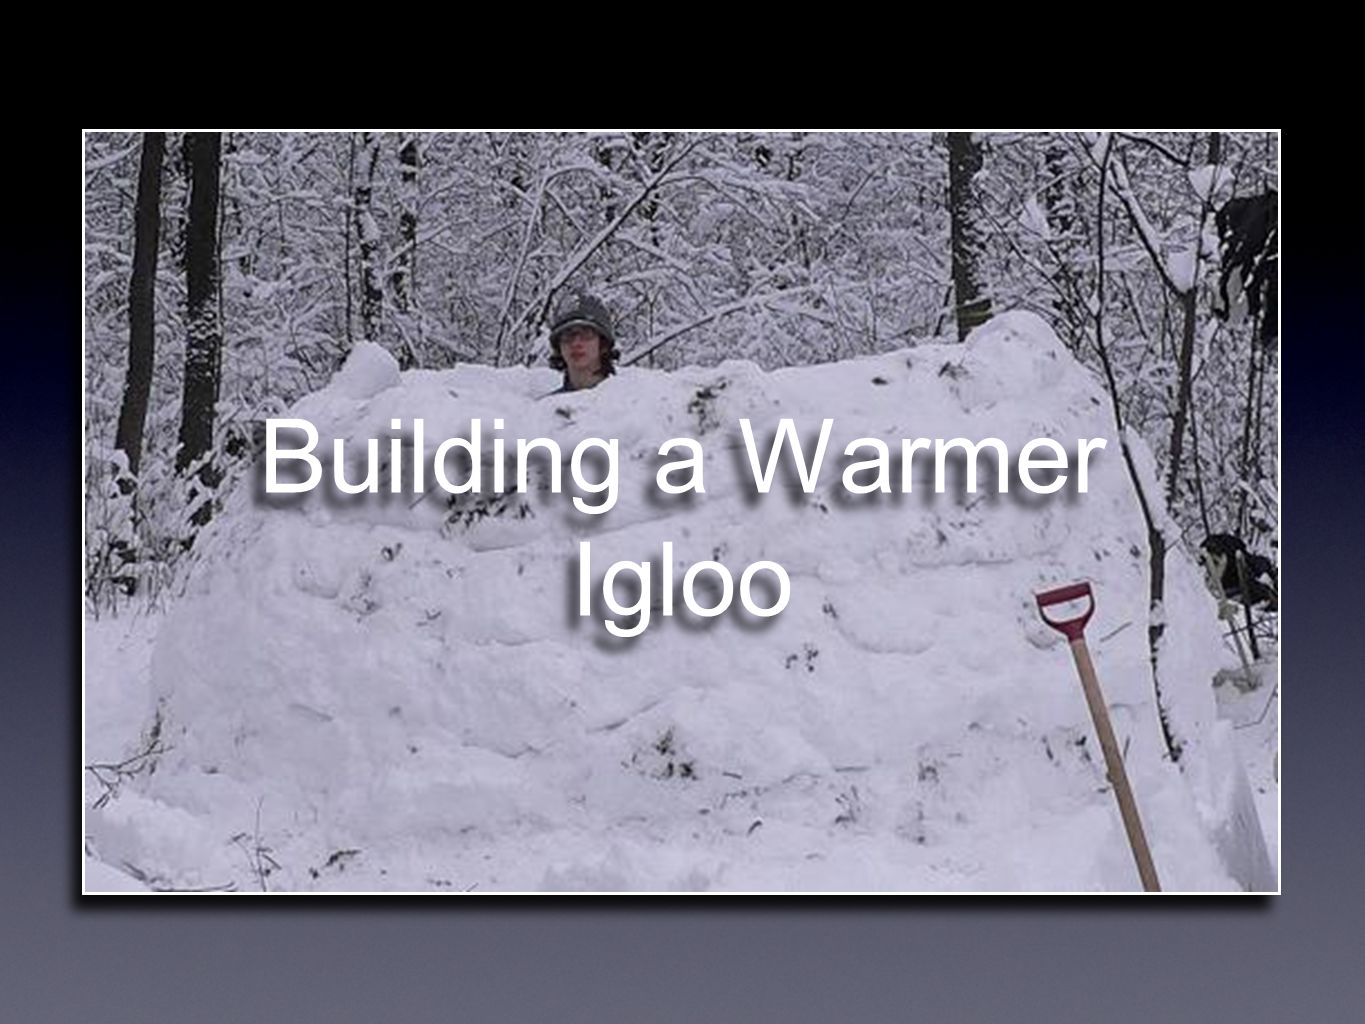 Building a Warmer Igloo